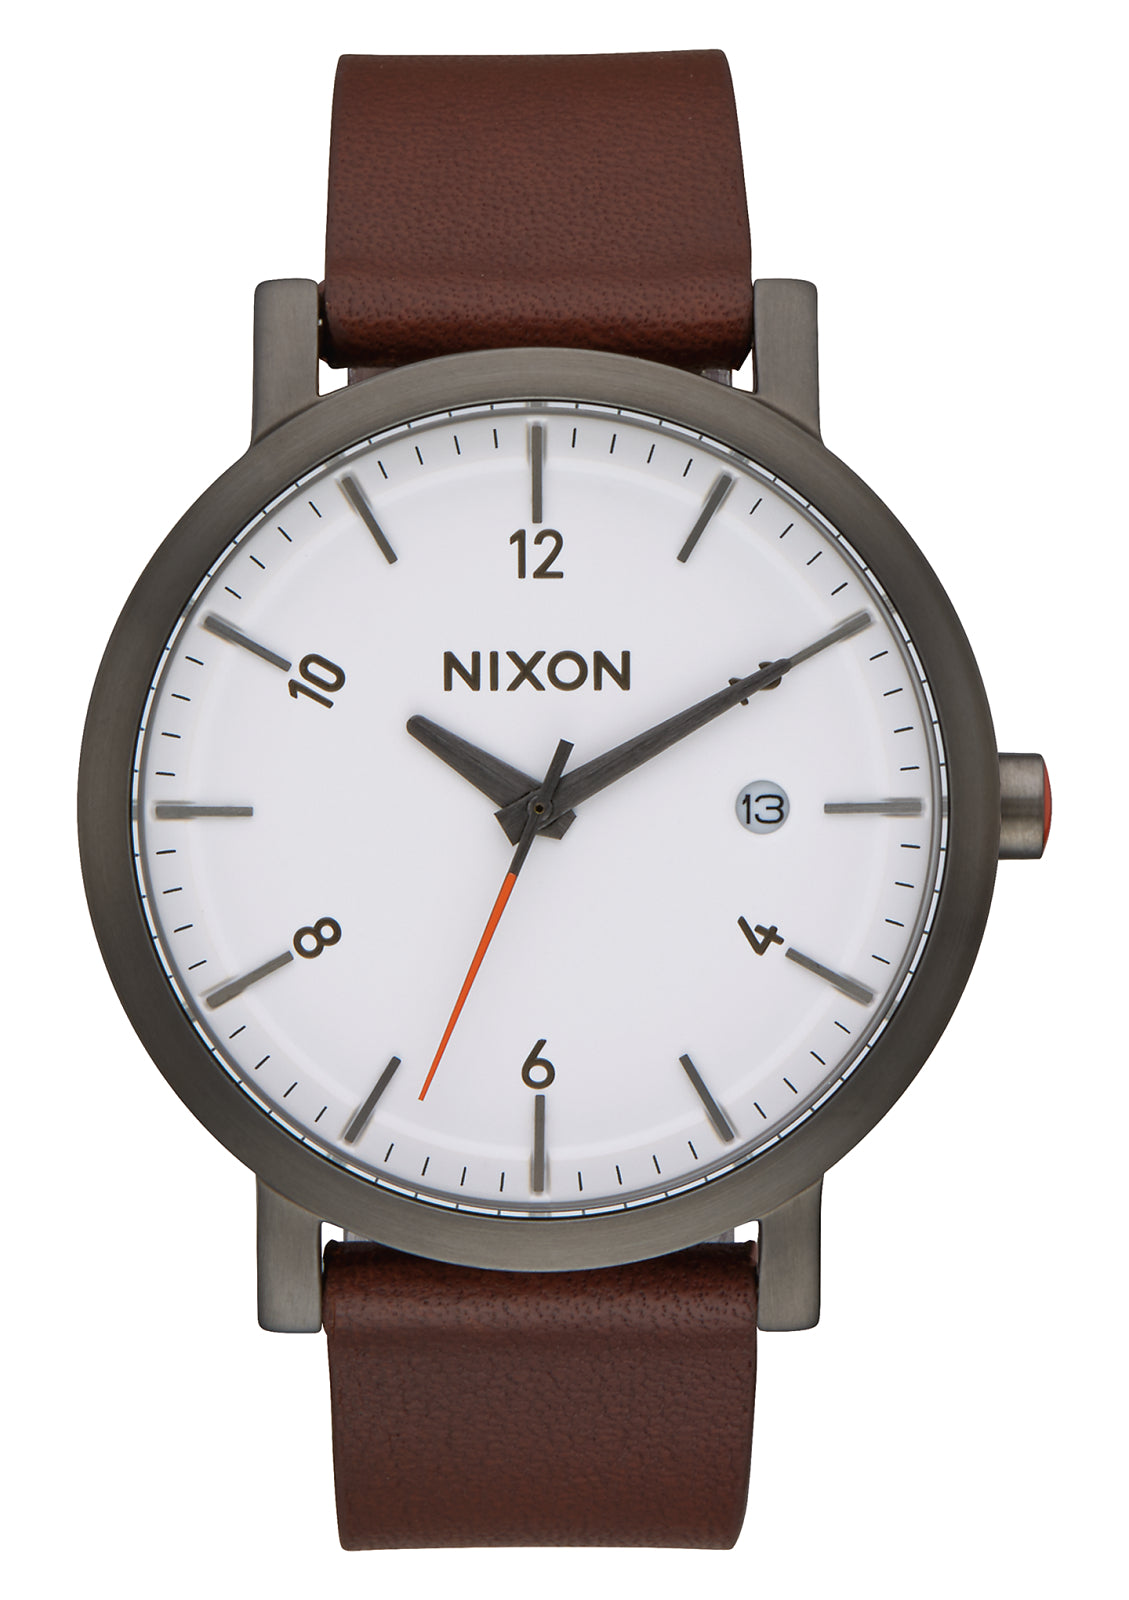 NIXON ROLLO 38 GUNMETAL/WHITE/BROWN WATCH